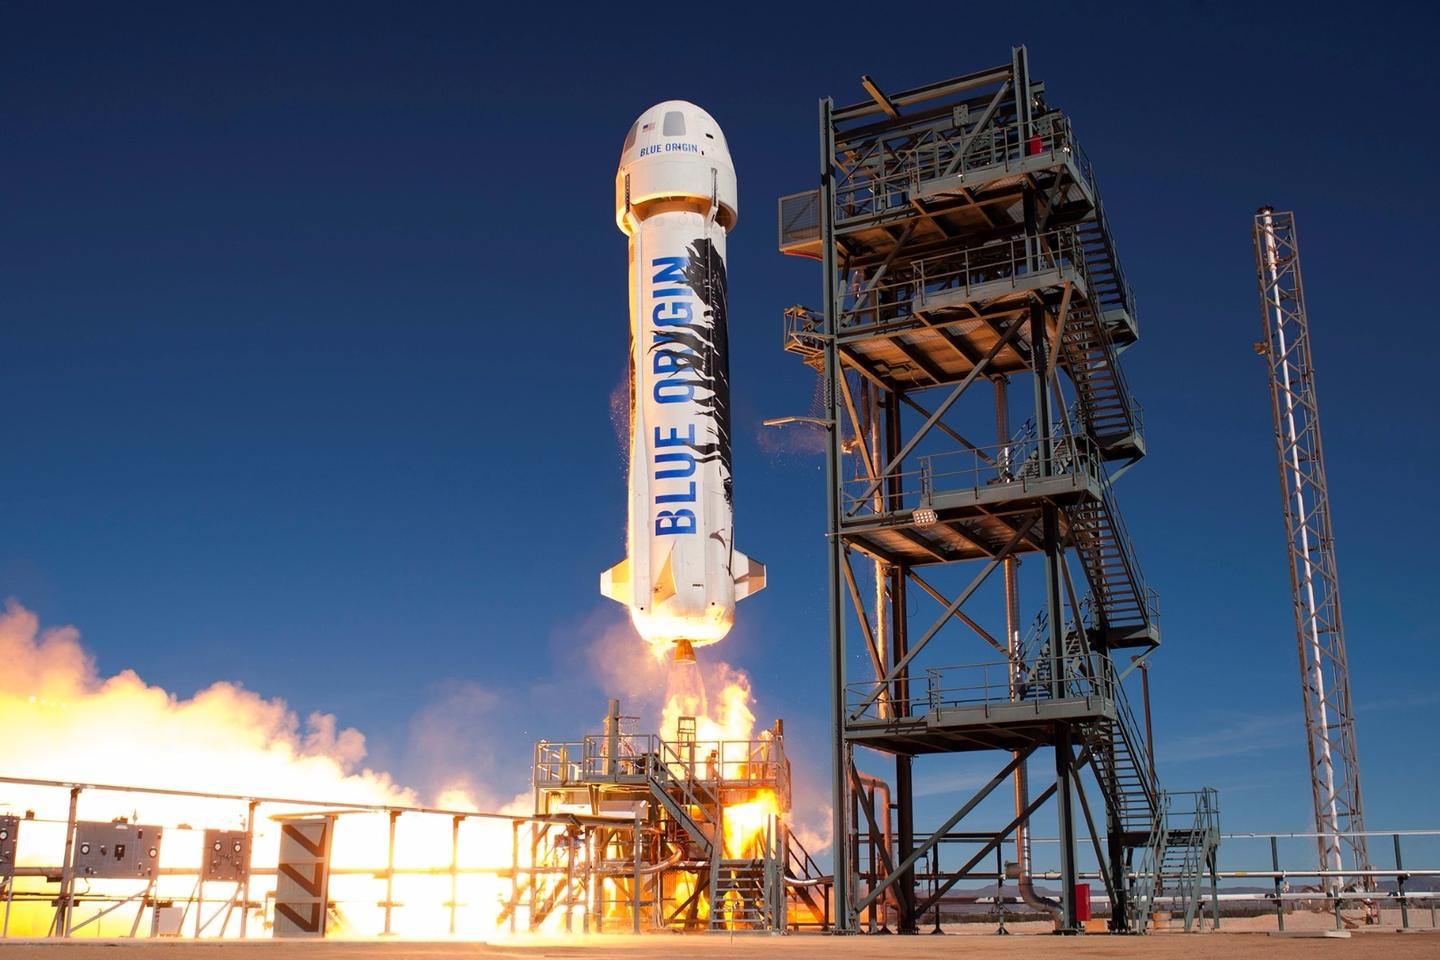 The New Shepard rocket was the same one used in Blue Origin's first powered landing flight in November